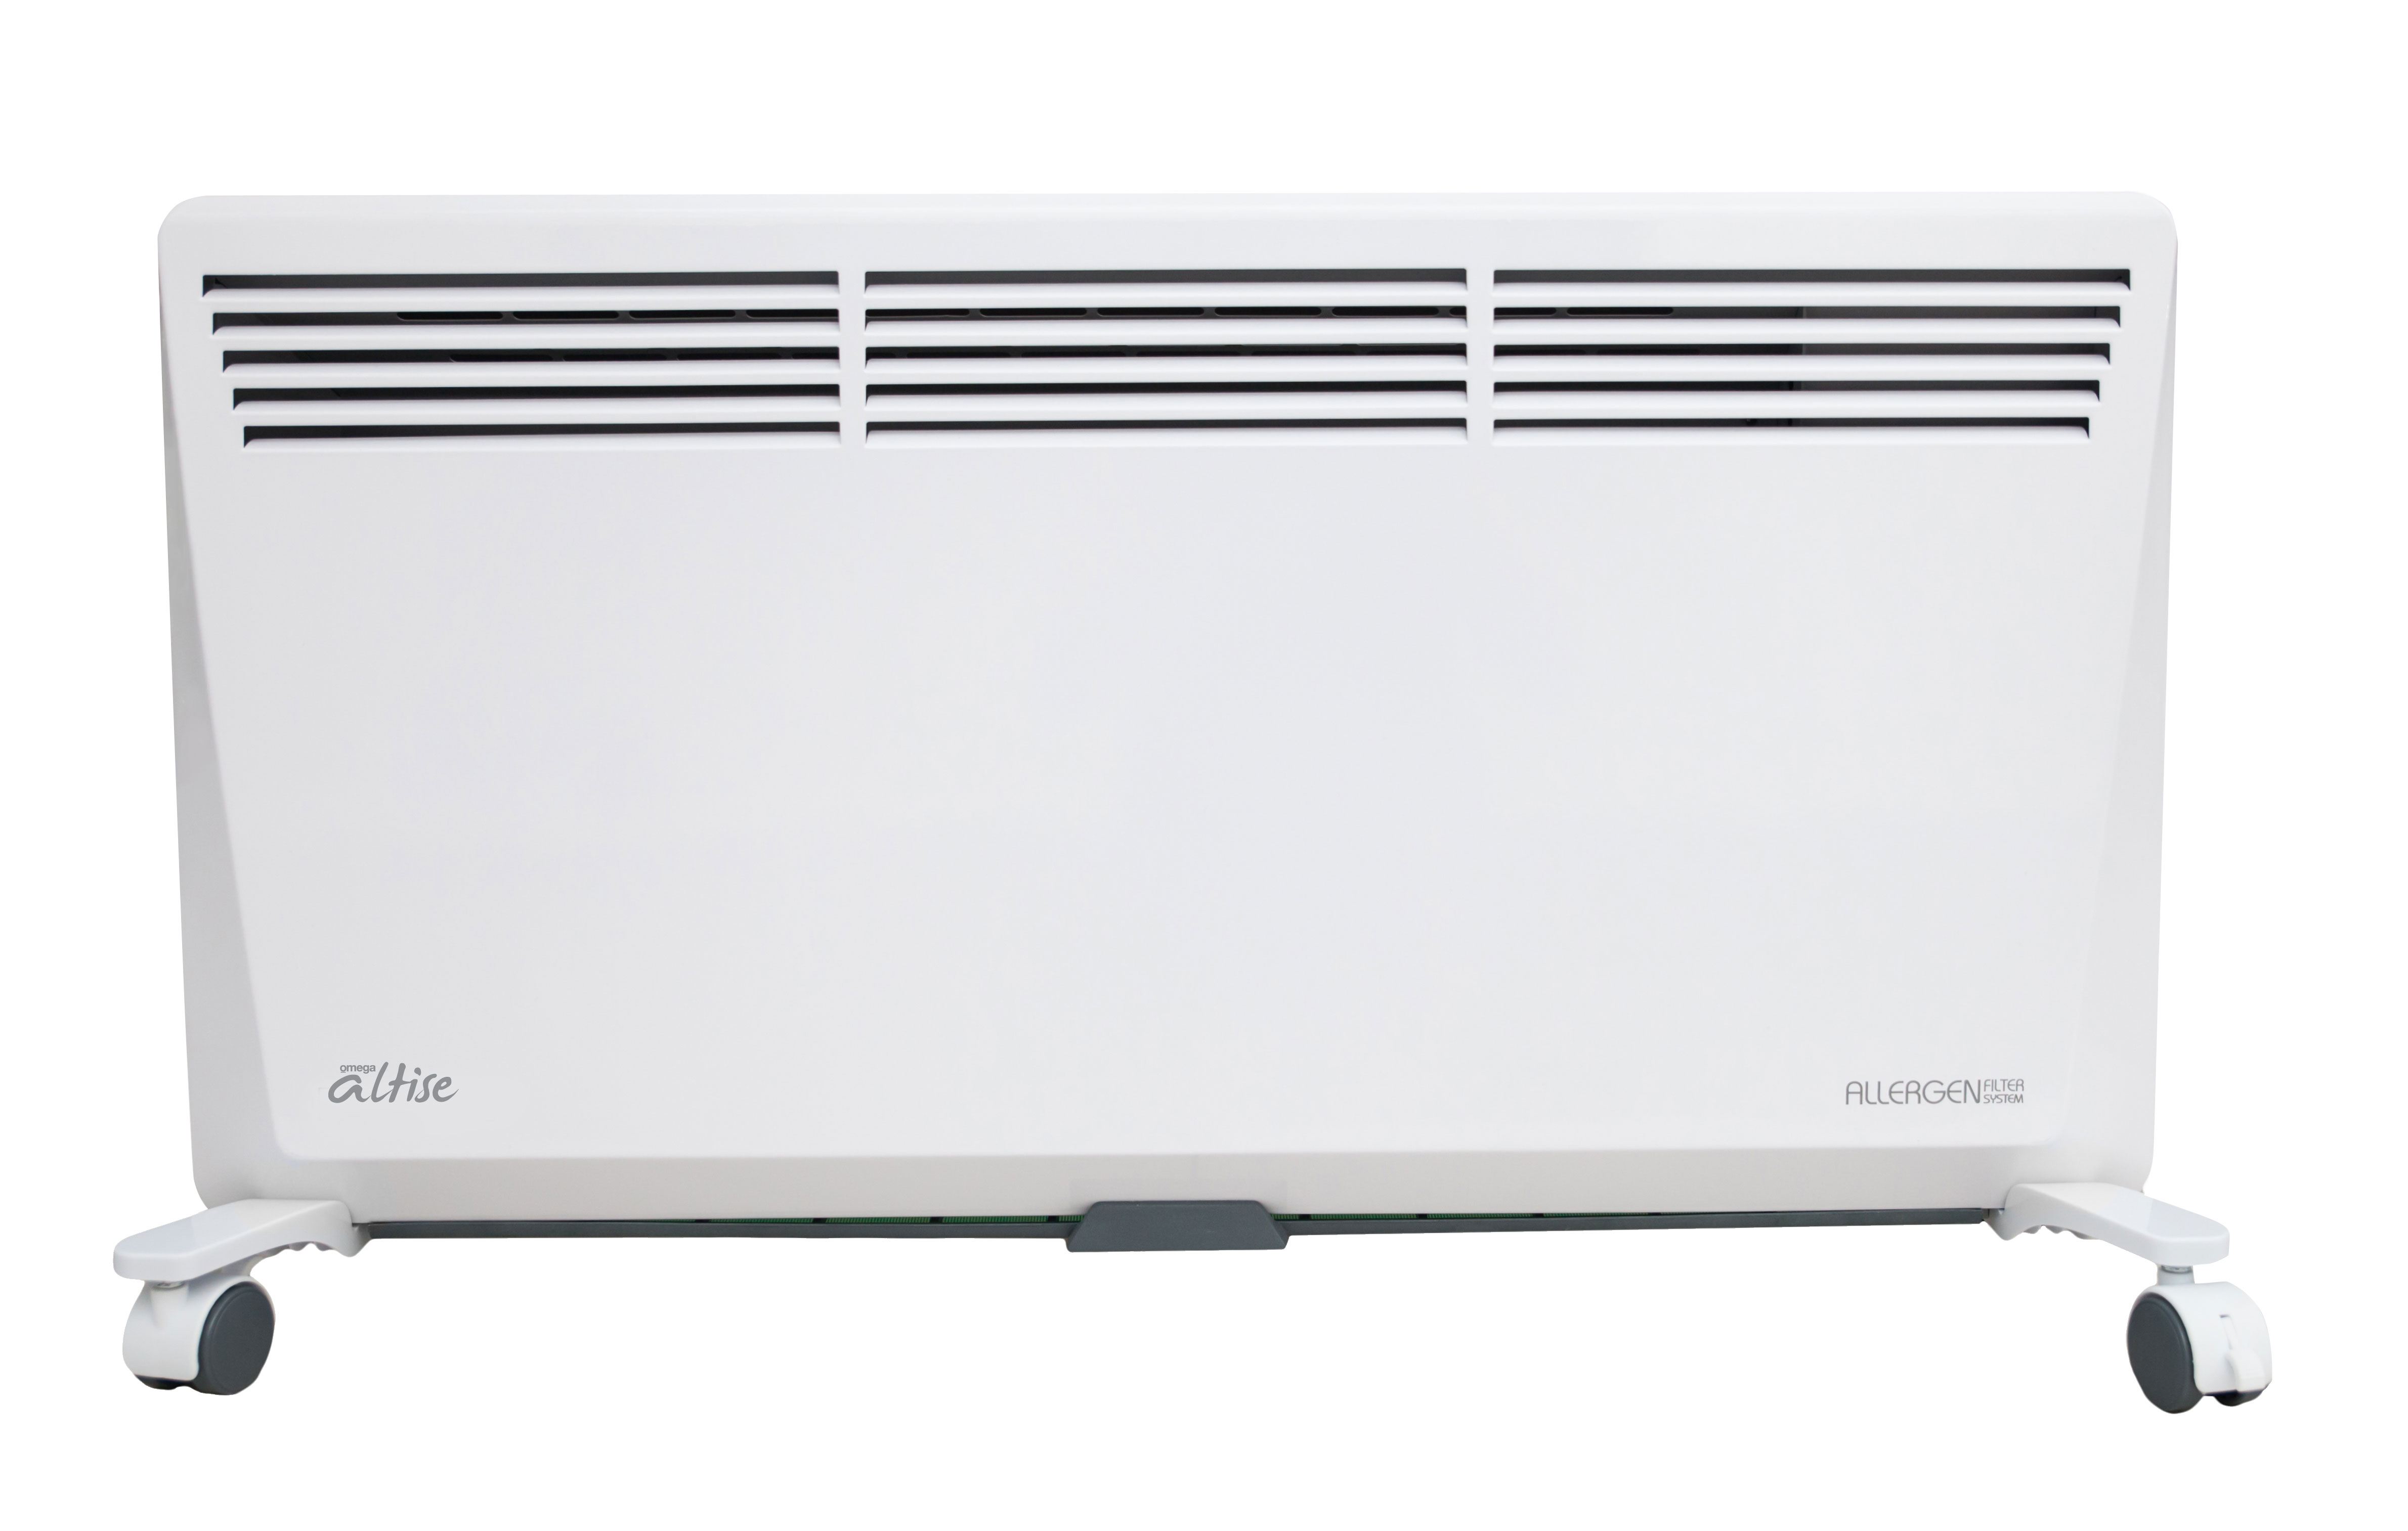 Omega Altise Product Panel Heater - With Filter 1500W  (ANPE1500W)